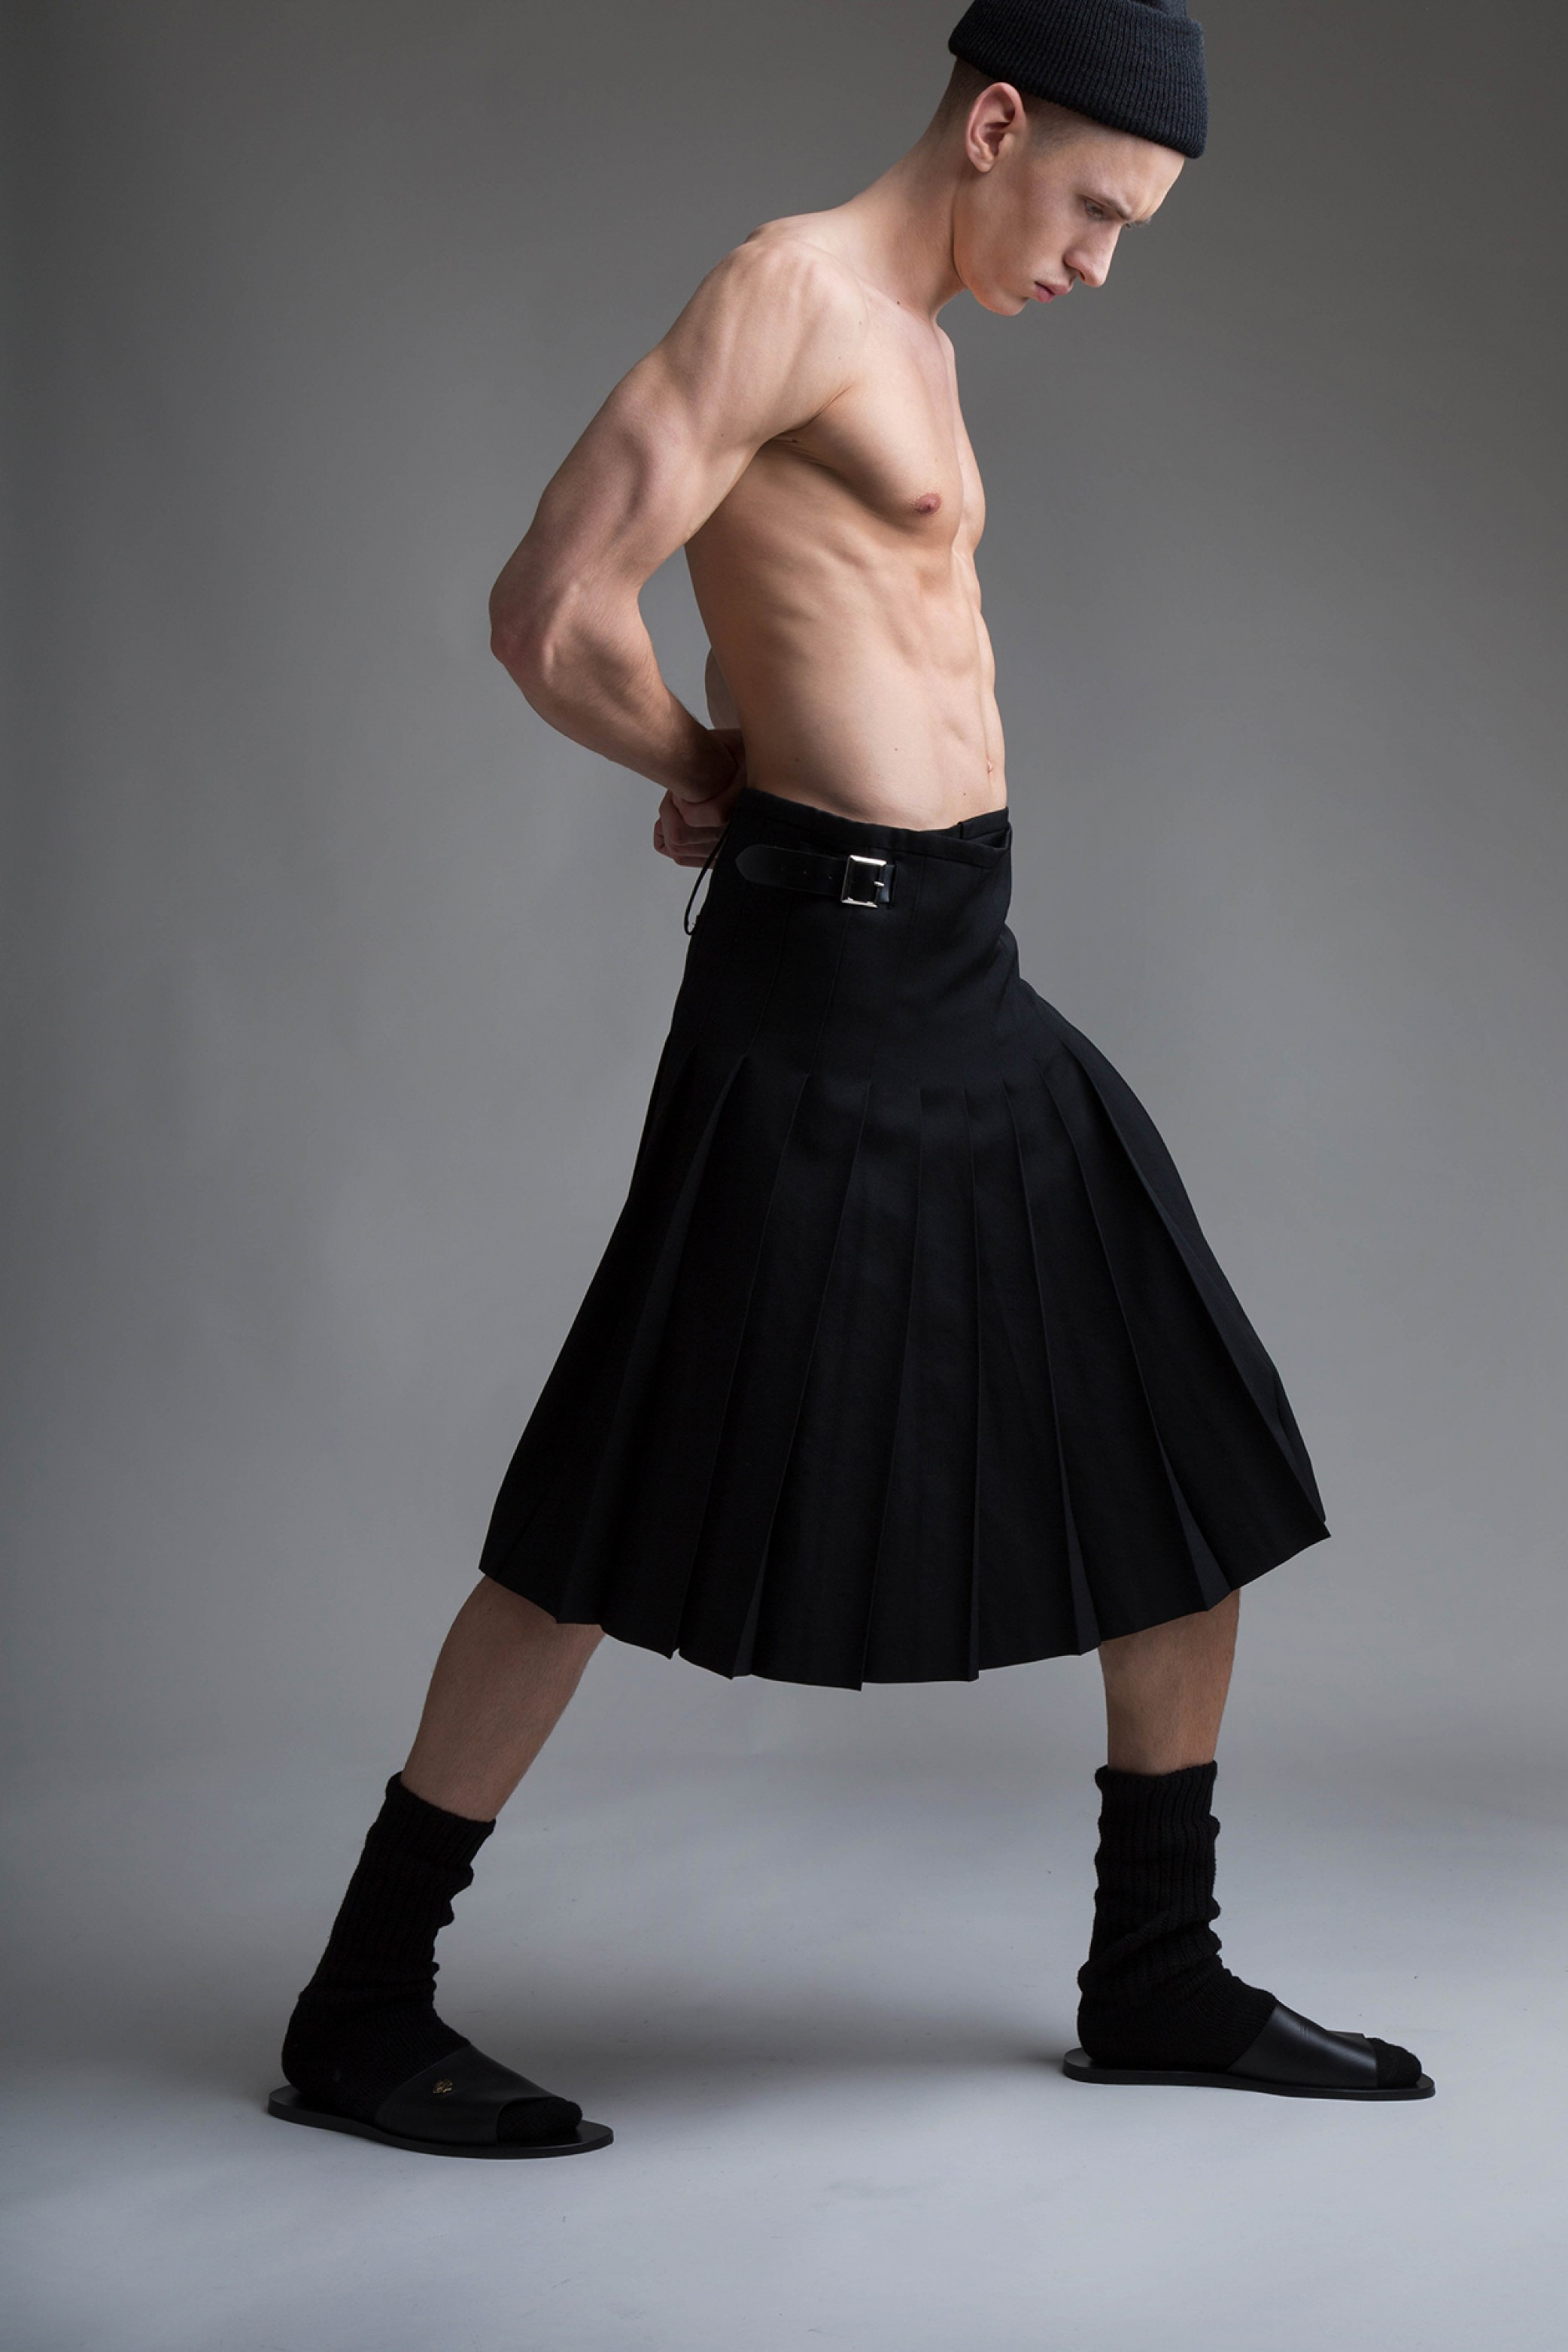 Men's Skirts | The New World Order